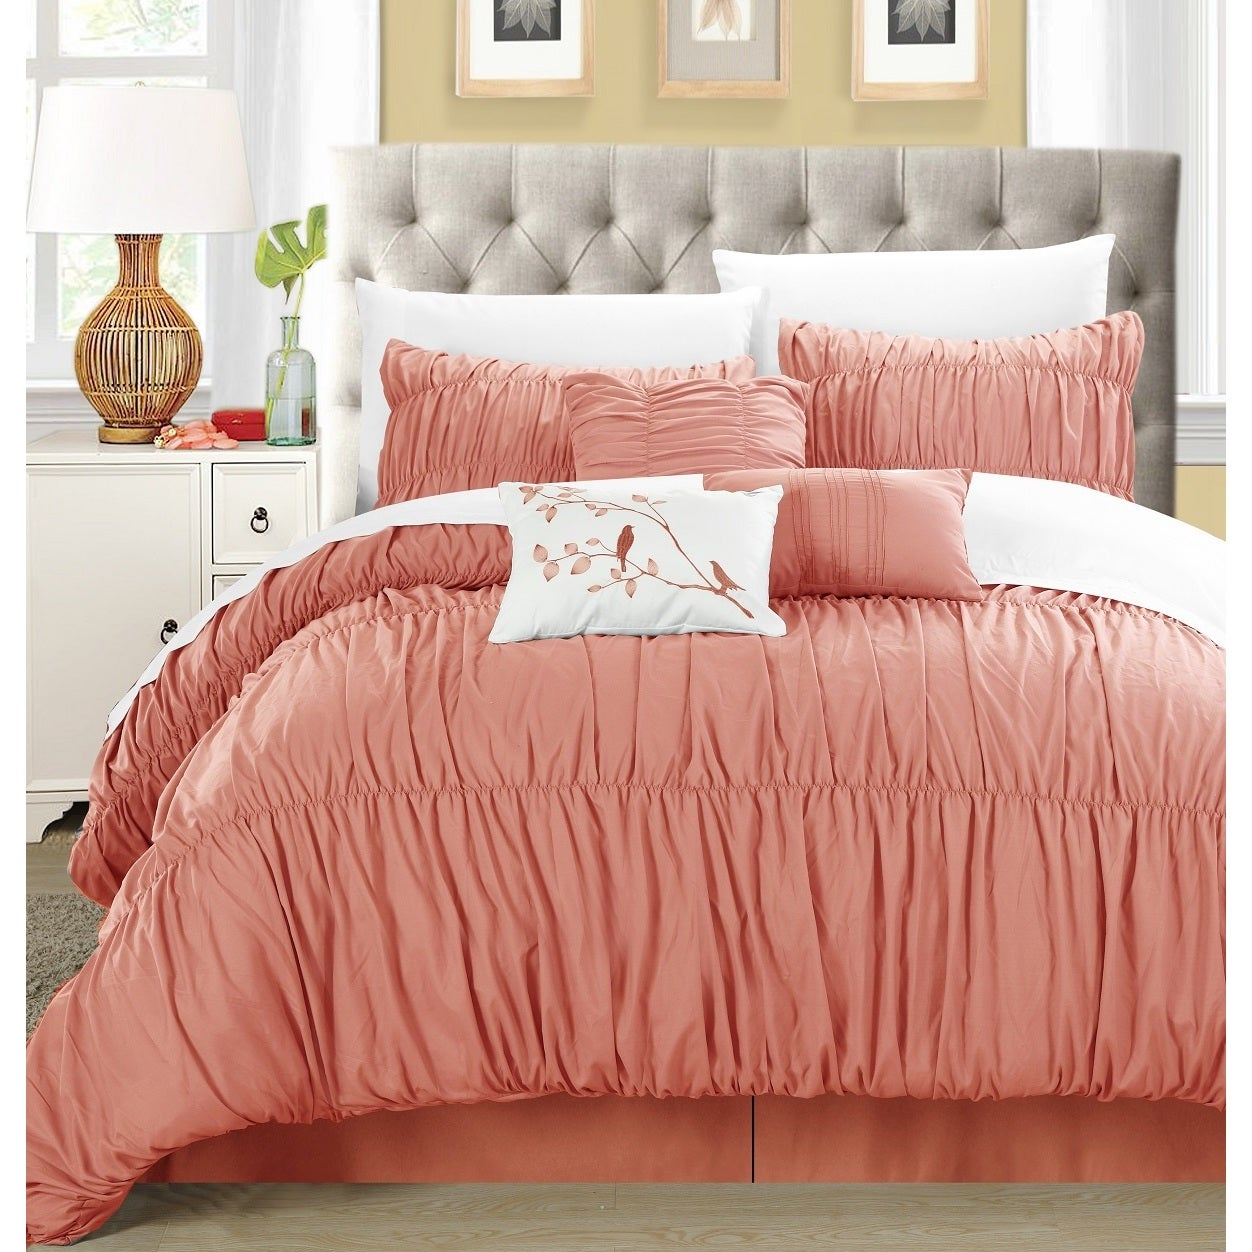 Shop Chic Home Frances 7 Piece Peach Pleated And Ruffled